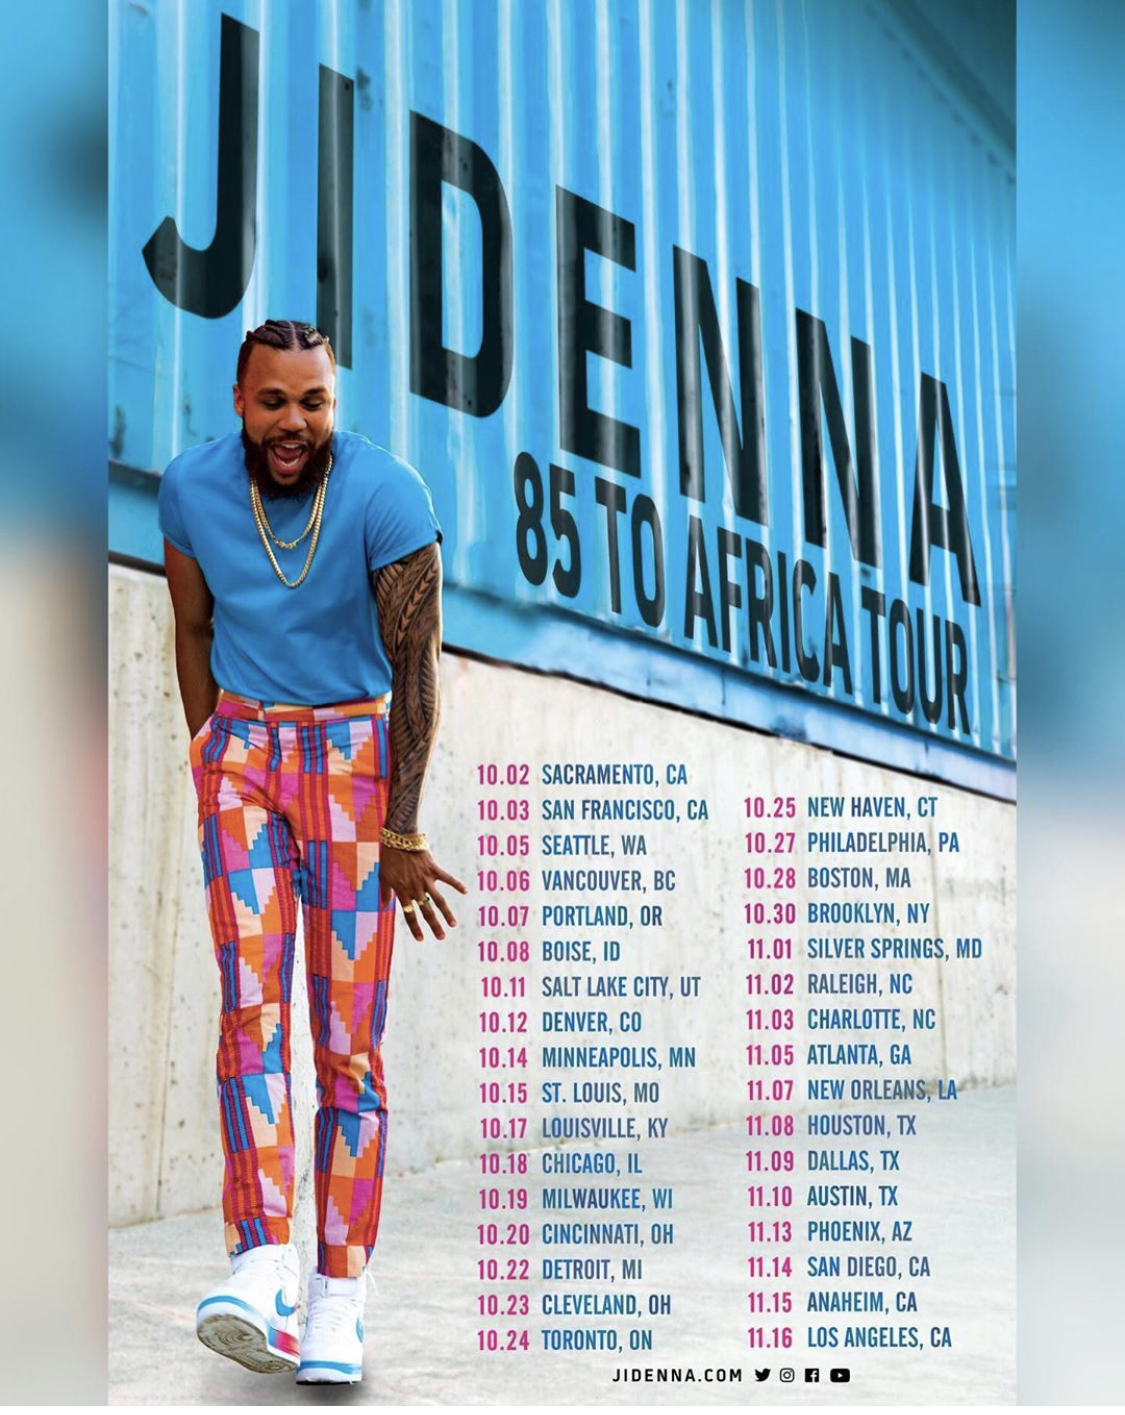 Jidenna 85 to Africa Tour